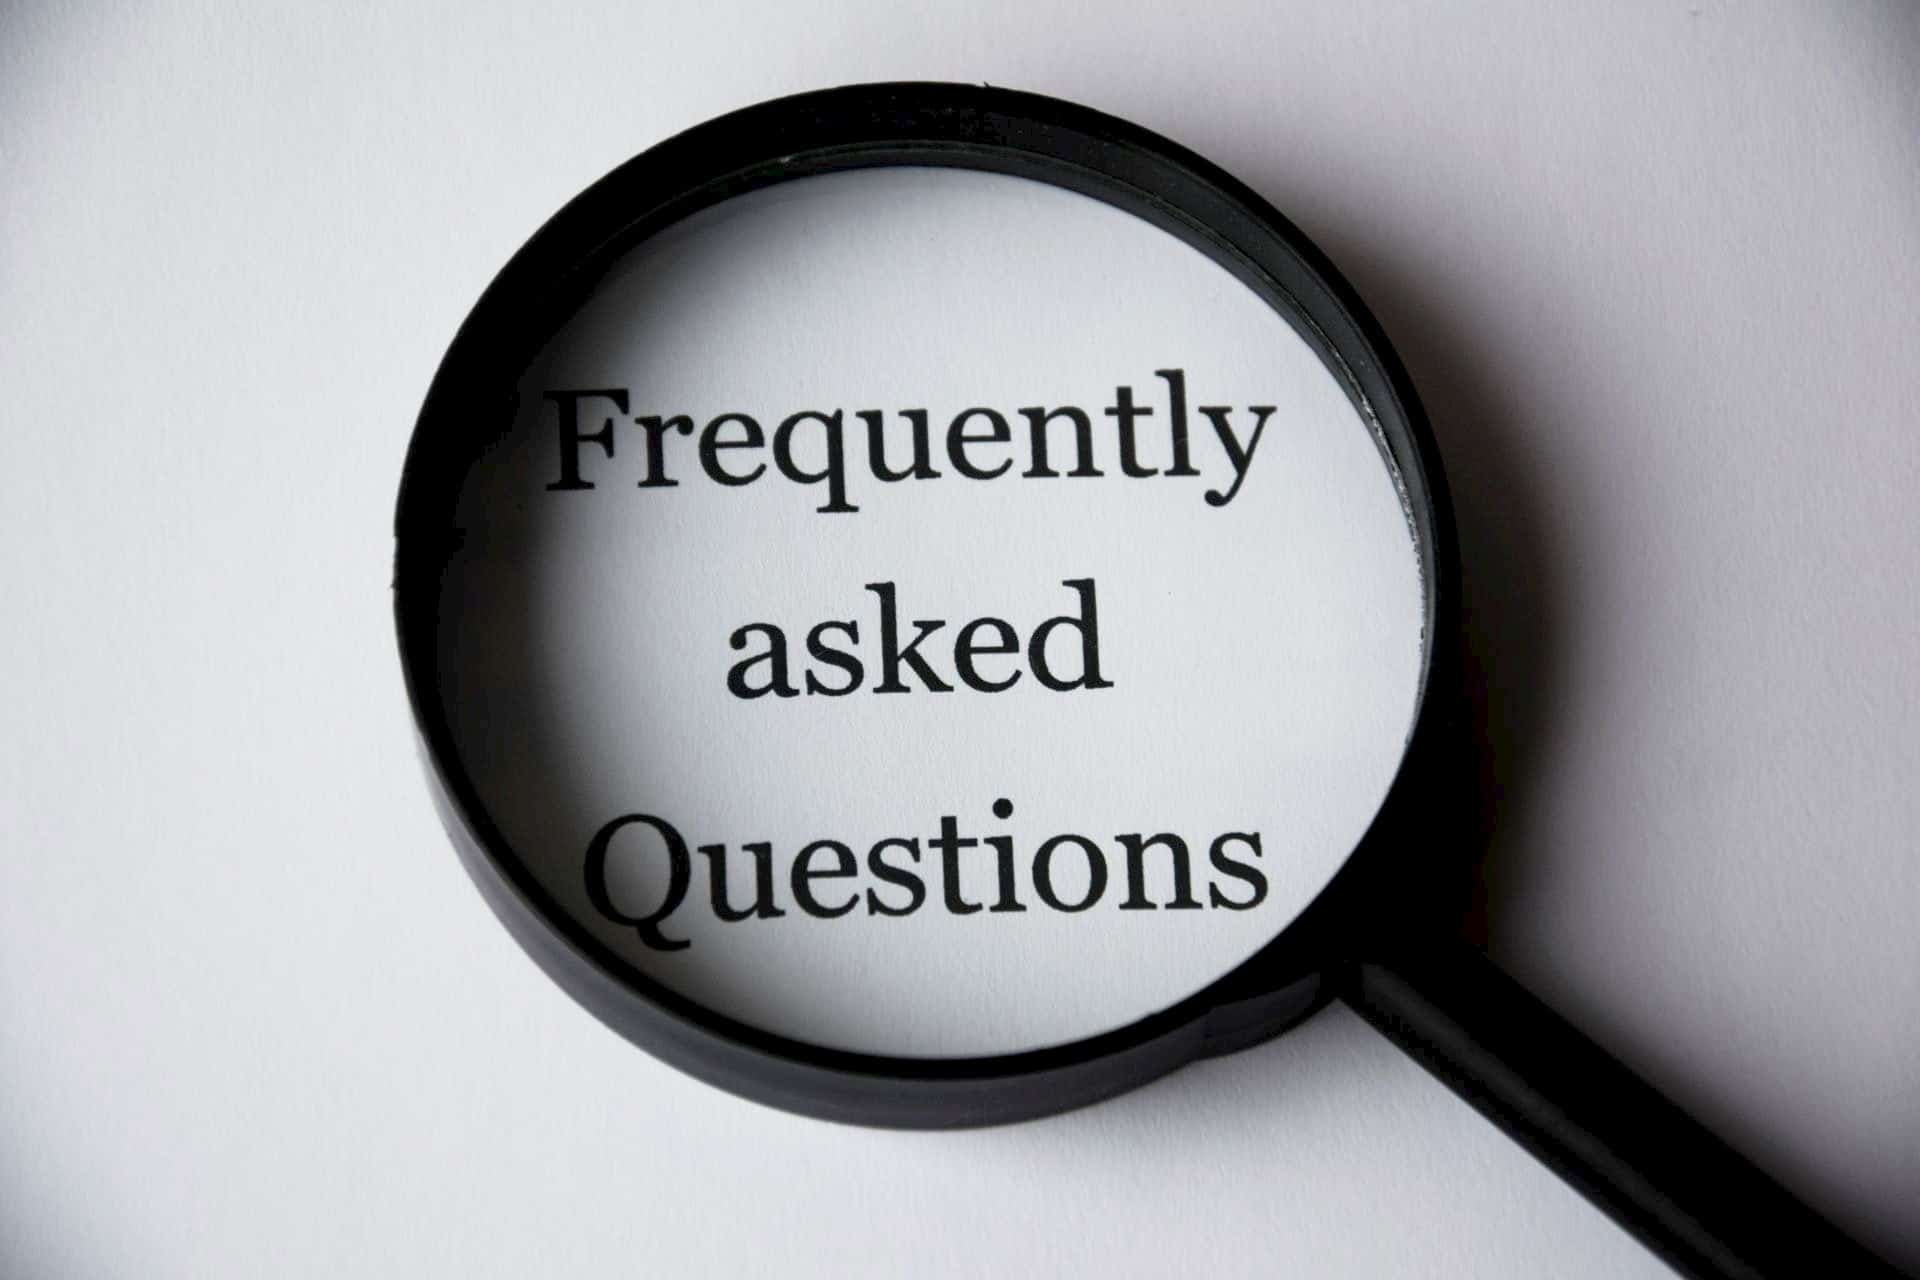 frequently asked questions magnifying glass